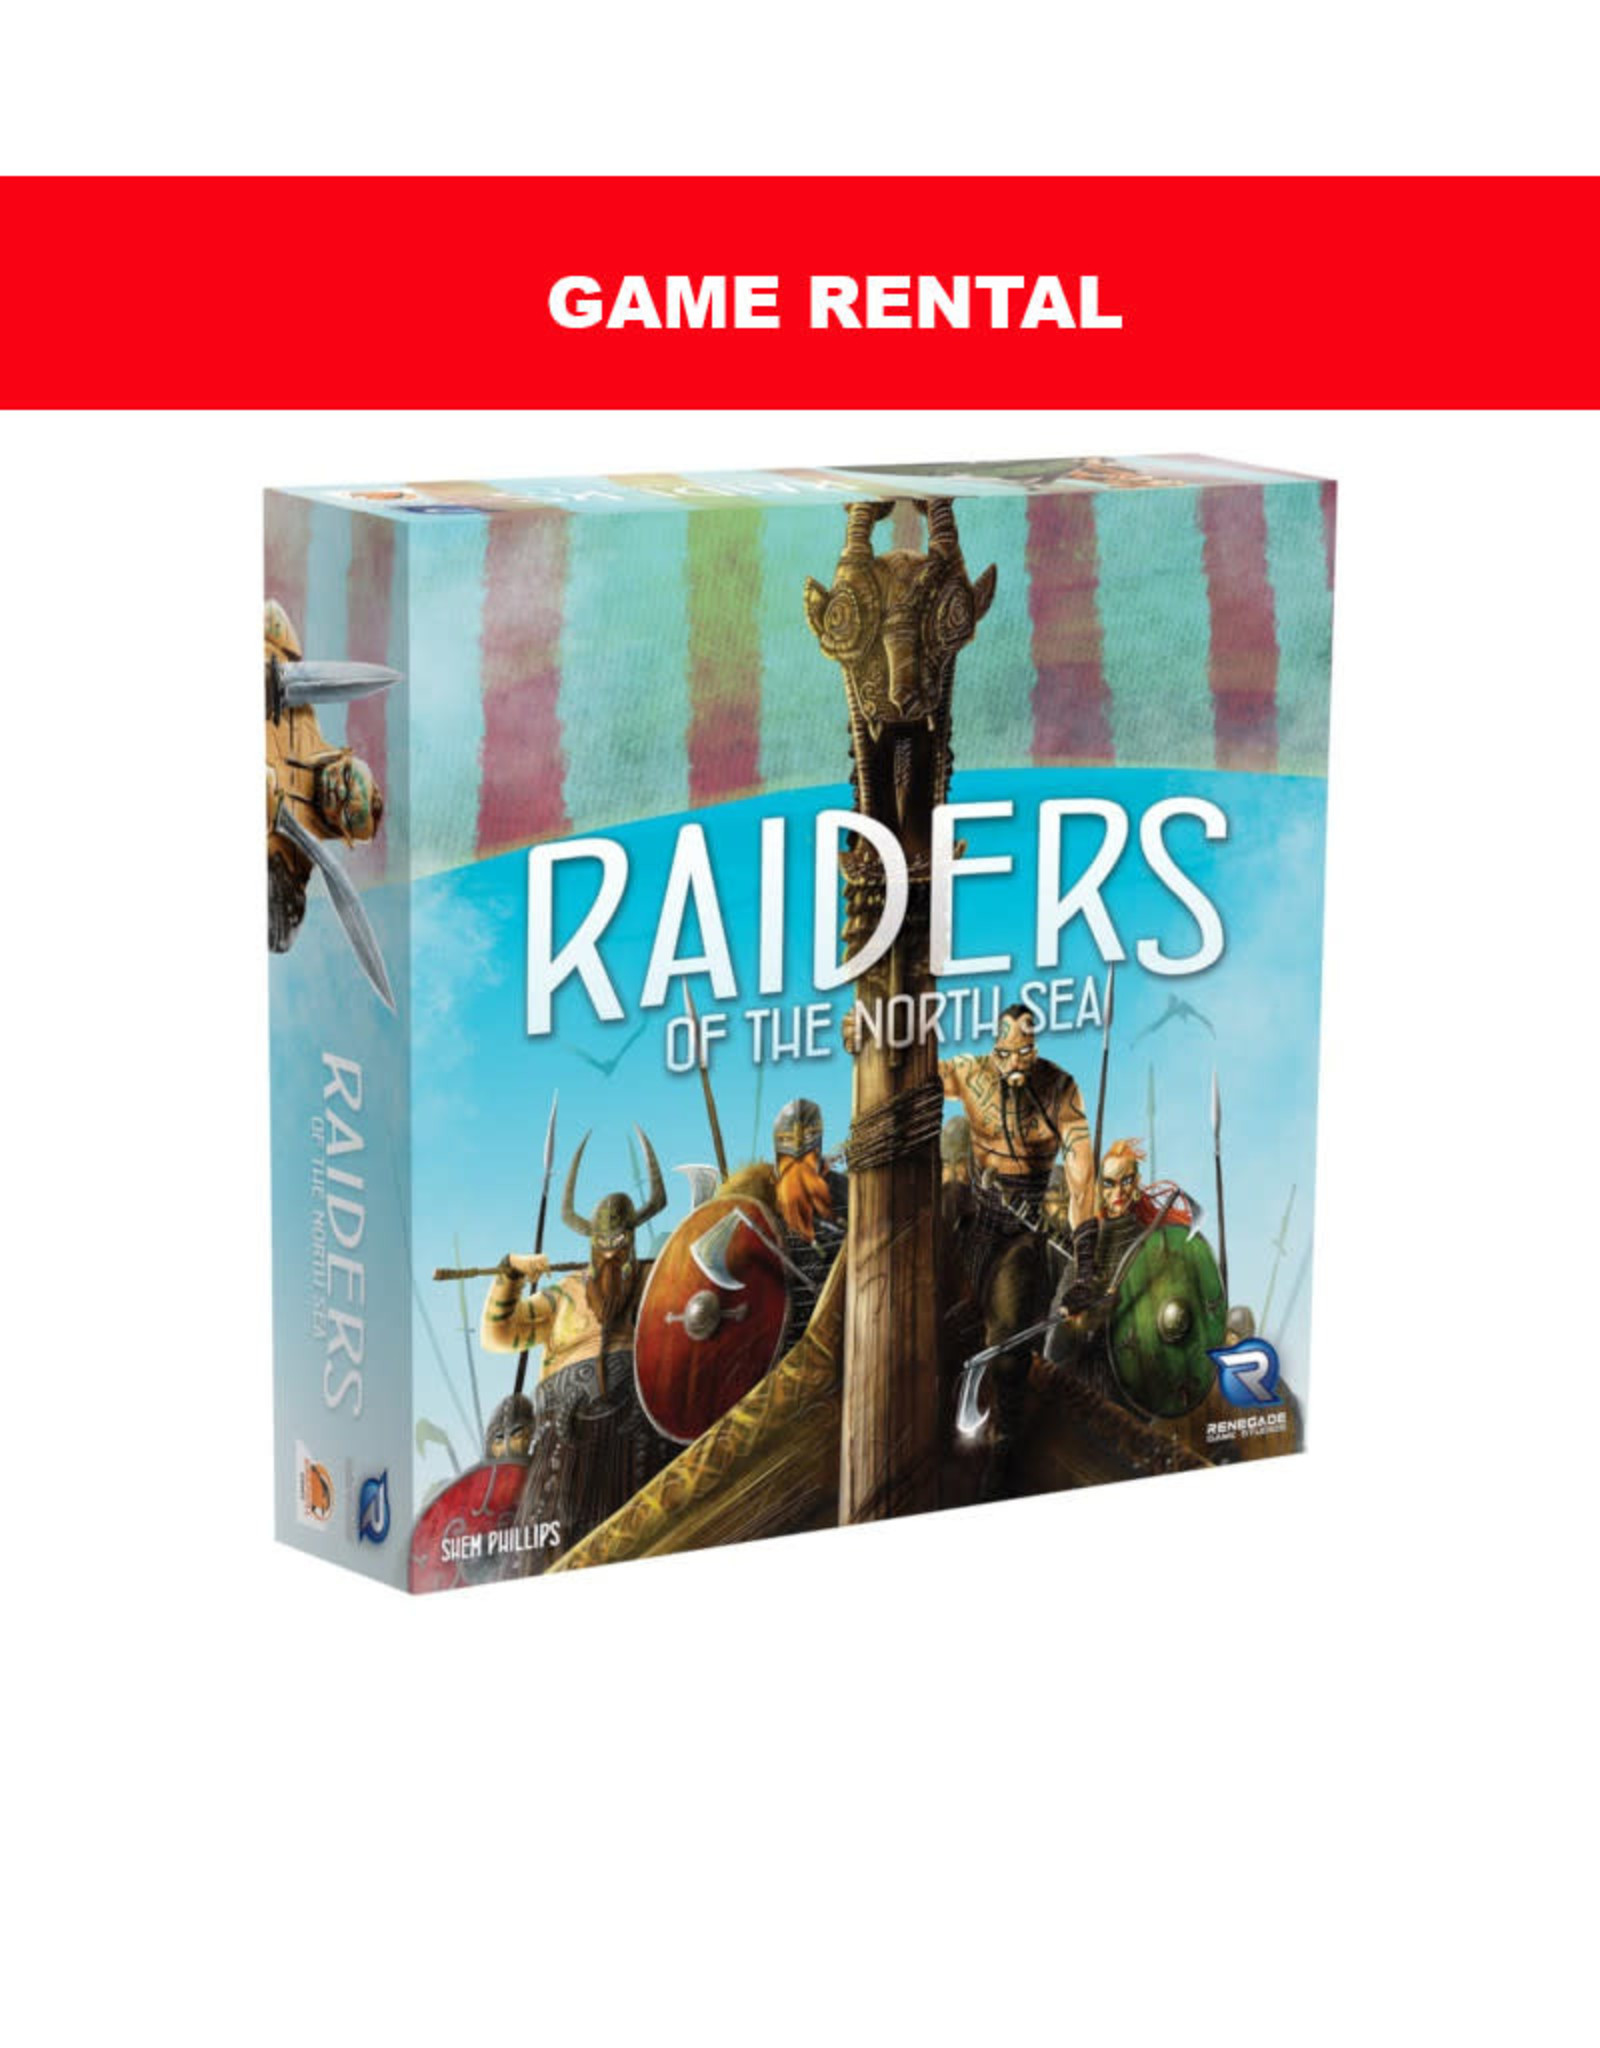 Game Night Games (RENT) Raiders of the North Sea per day. Love it! Buy it!